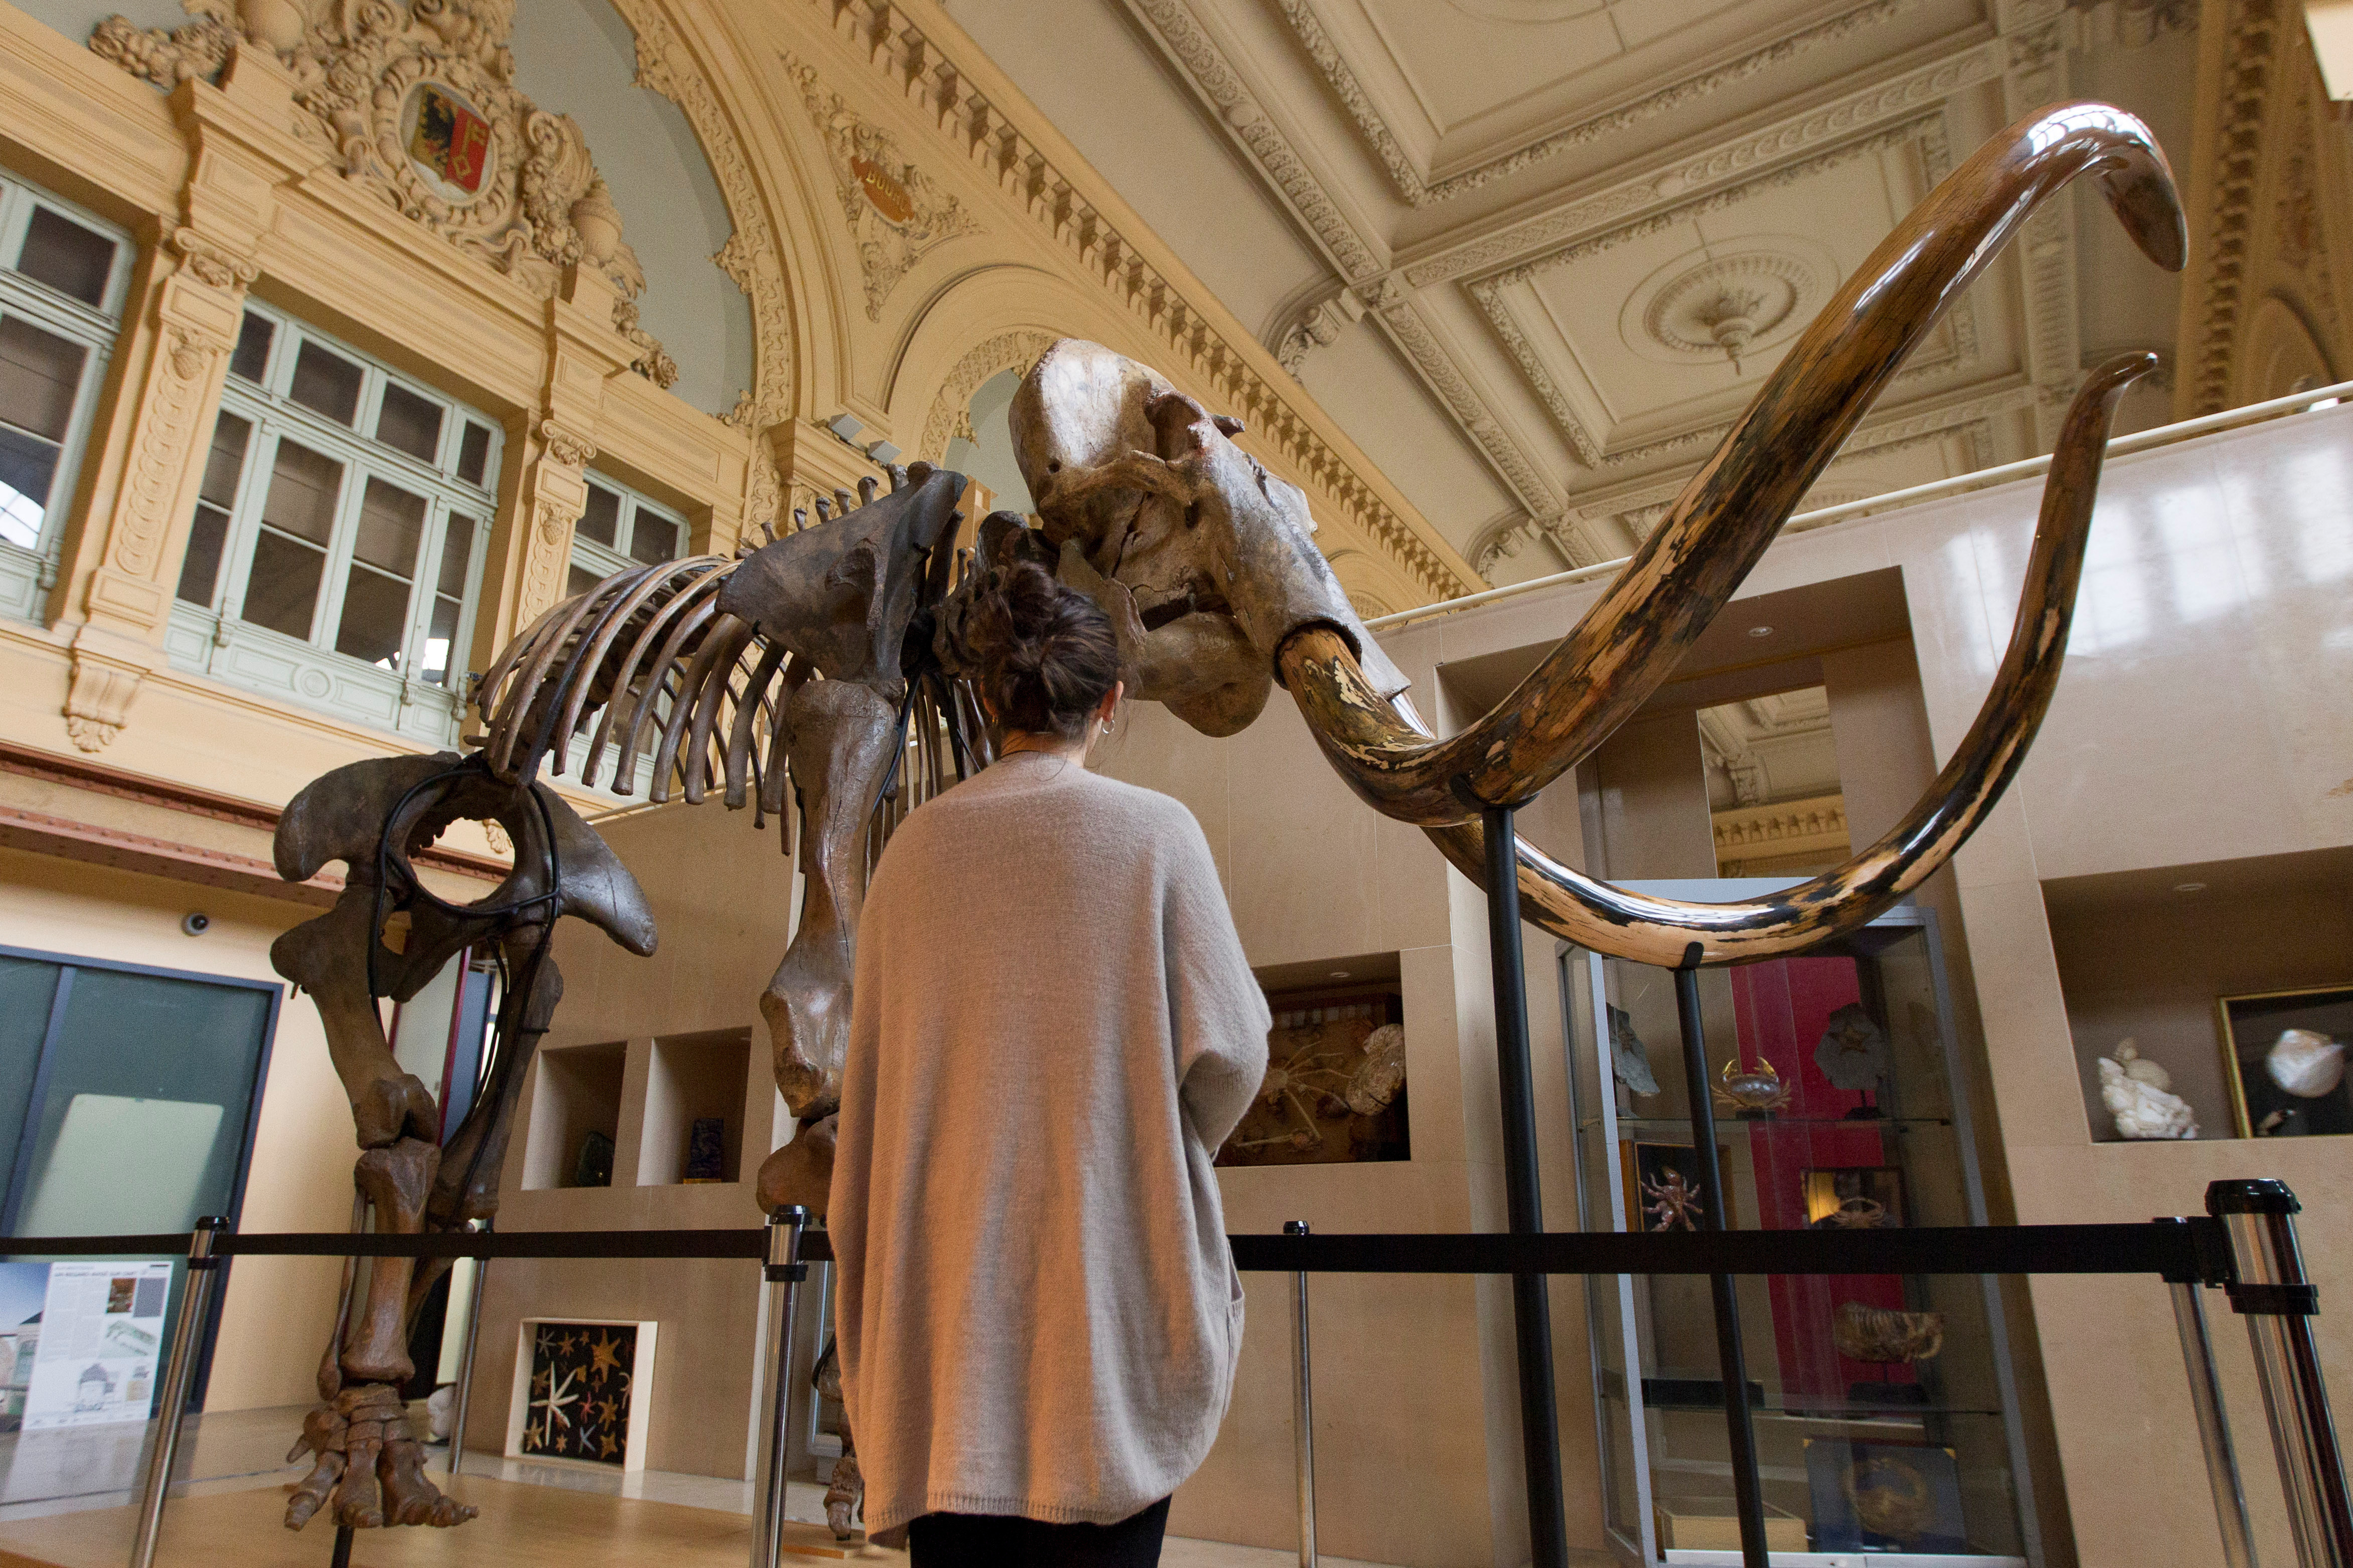 A visitor looks at a complete mammoth skeleton on displayed in a museum